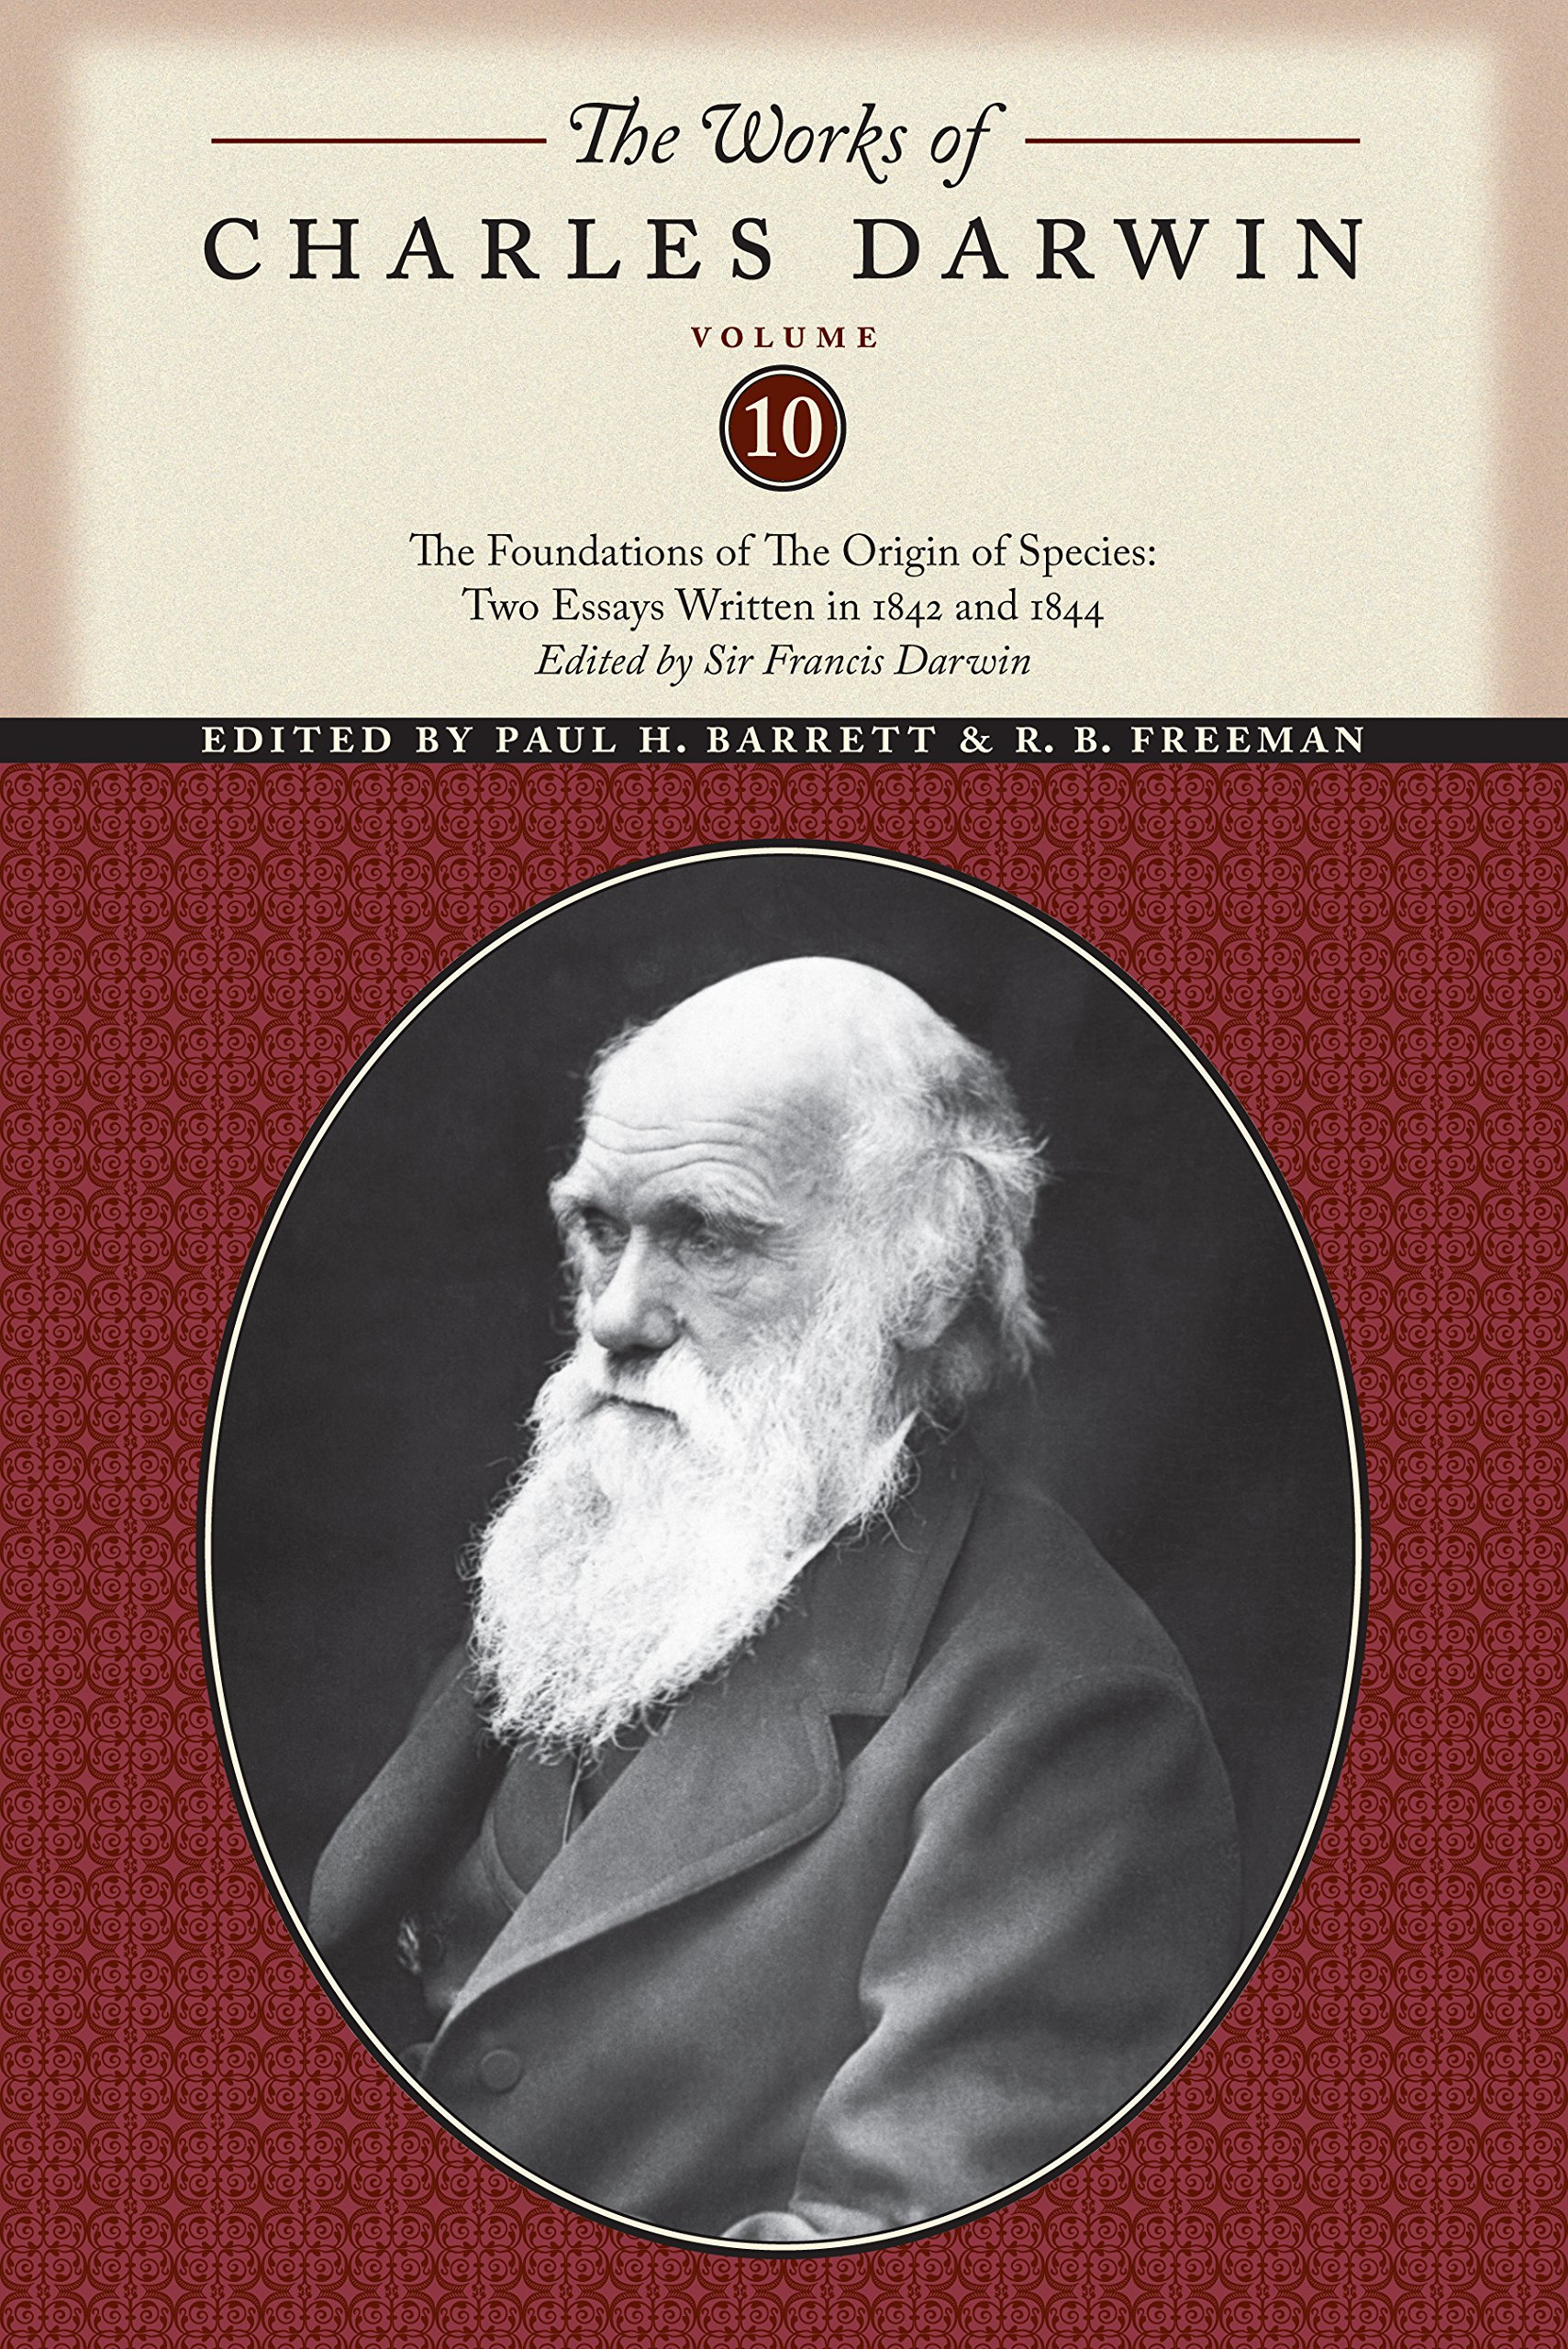 The Works of Charles Darwin, Volume 10: The Foundations of The Origin of the Species: Two Essays Written in 1842 and 1844